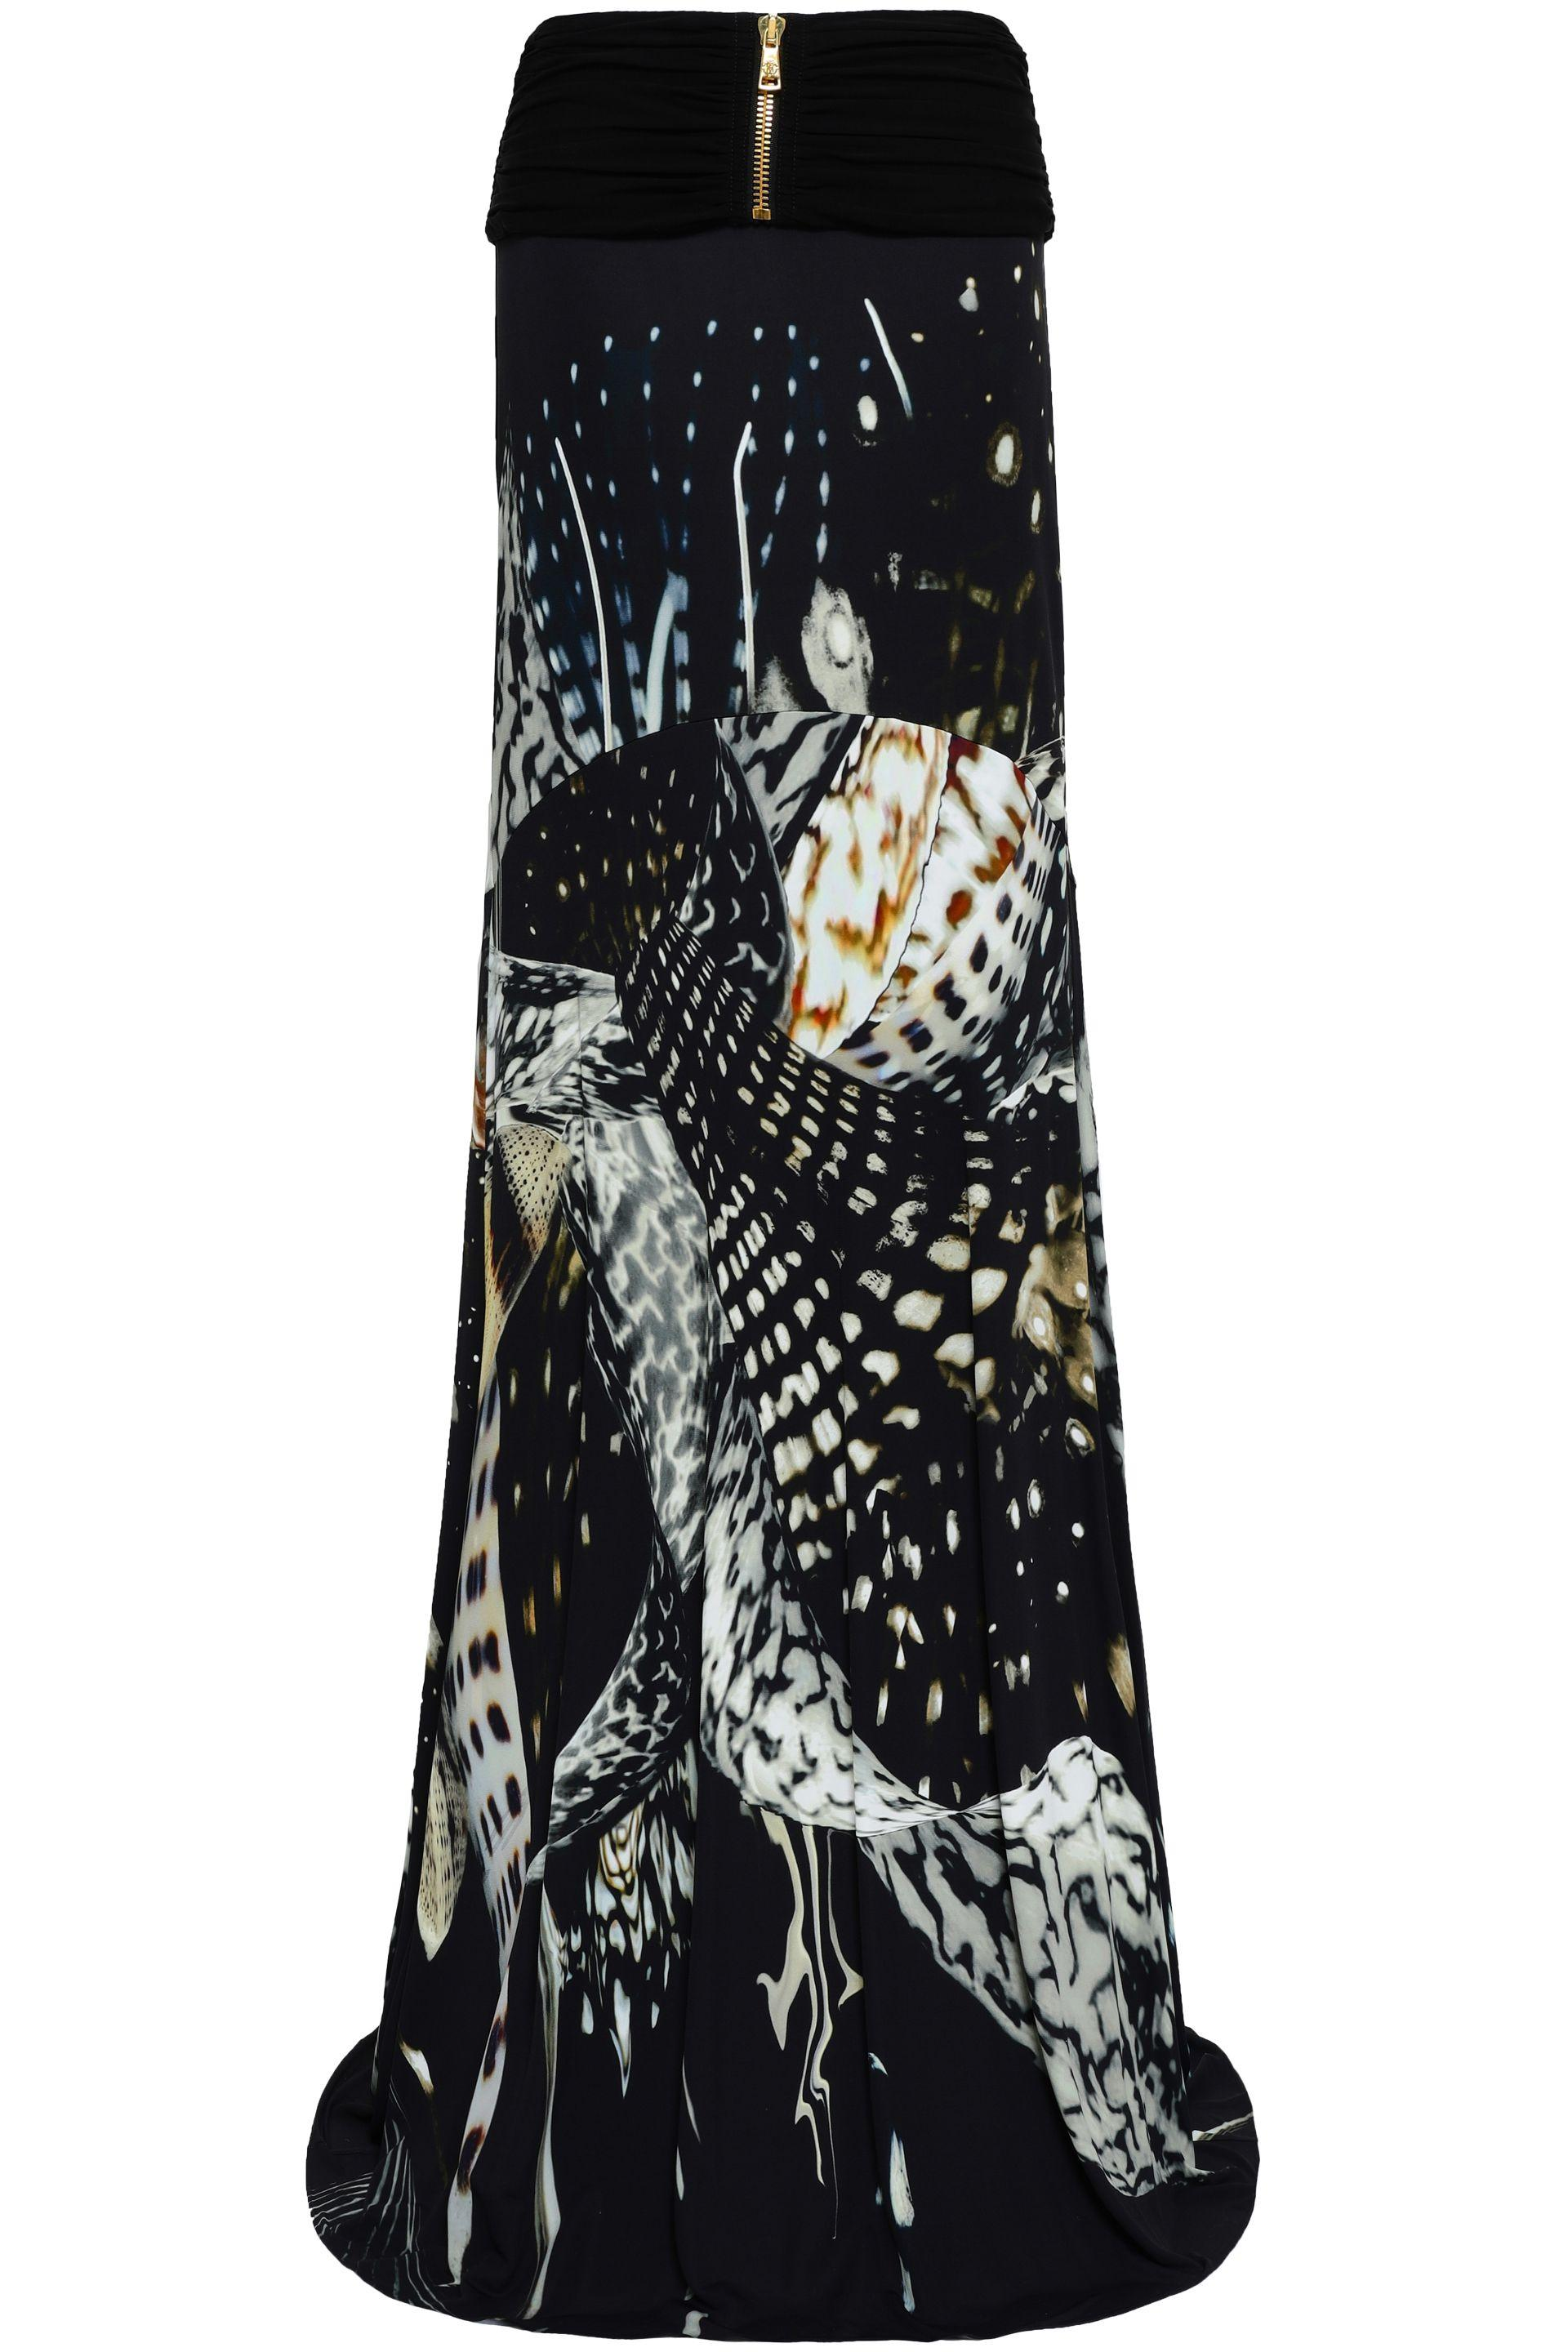 Roberto Cavalli Woman Printed Satin Maxi Skirt Black in Black - Lyst 5d8a26dac